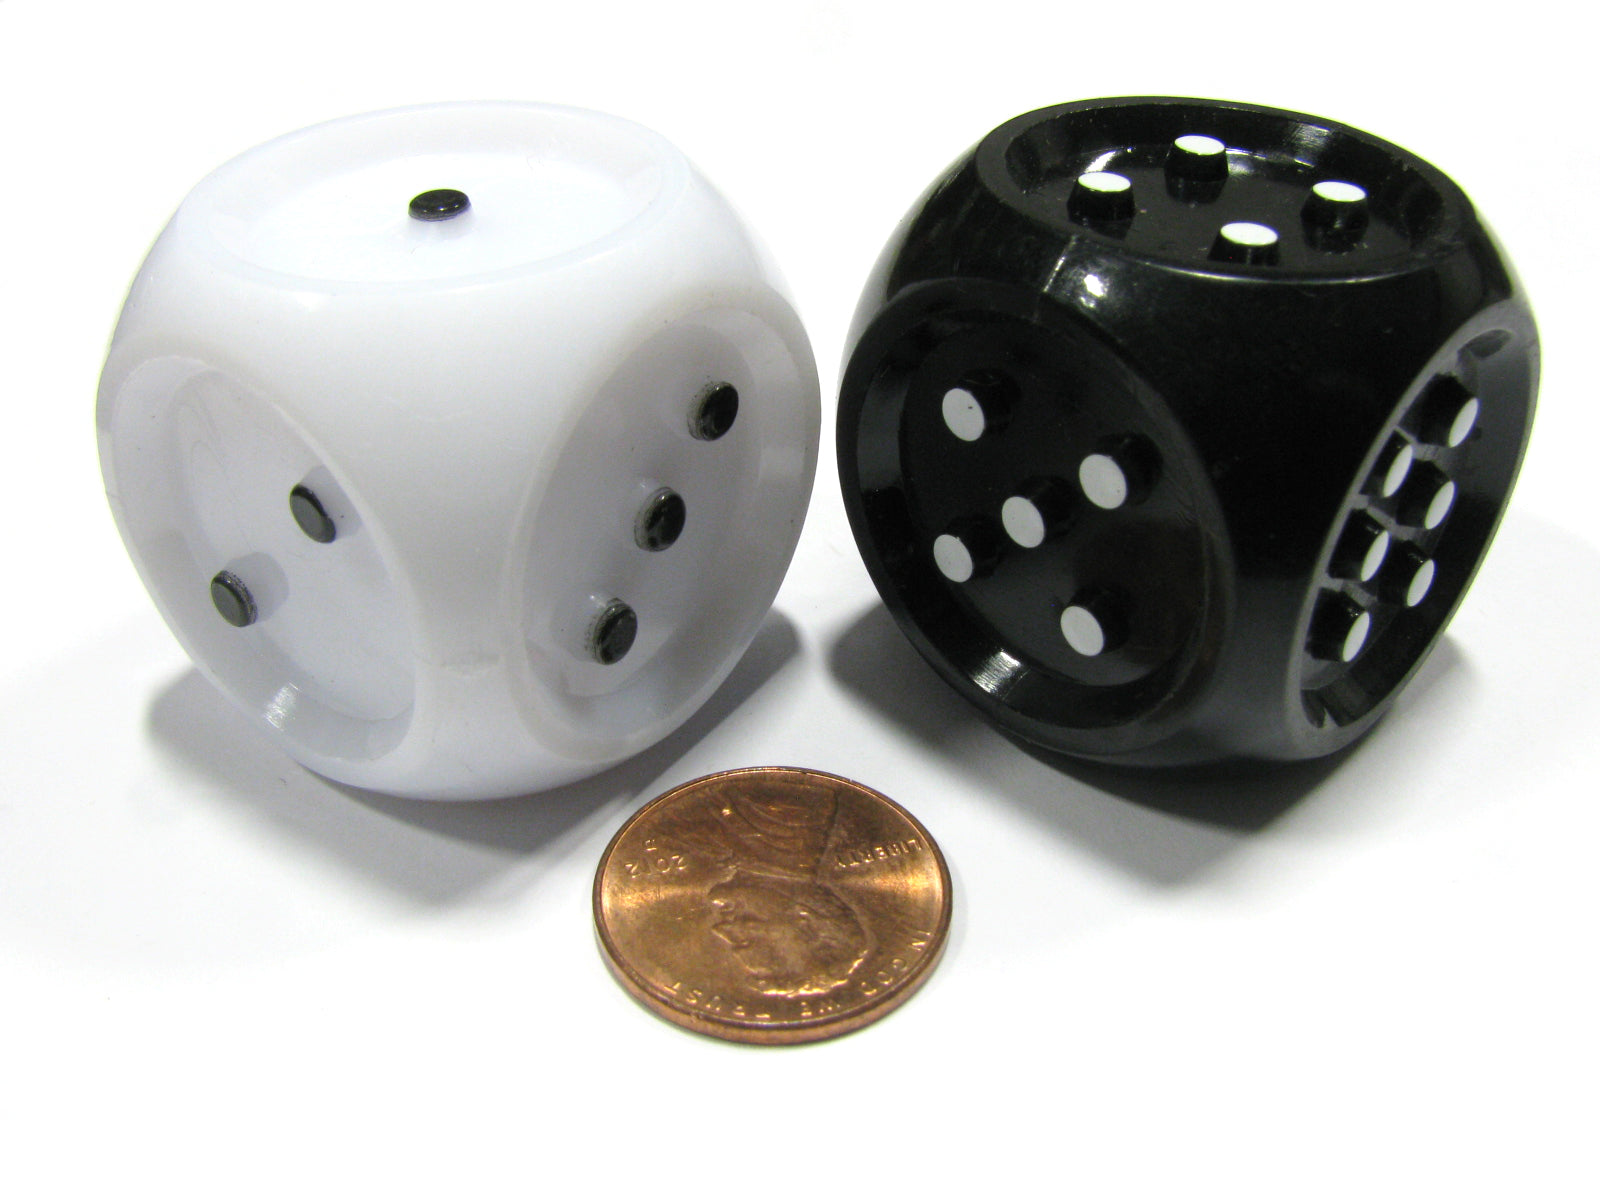 Set of 2 Large 32mm Tactile Dice for Seeing Impaired - Inverse Black and White